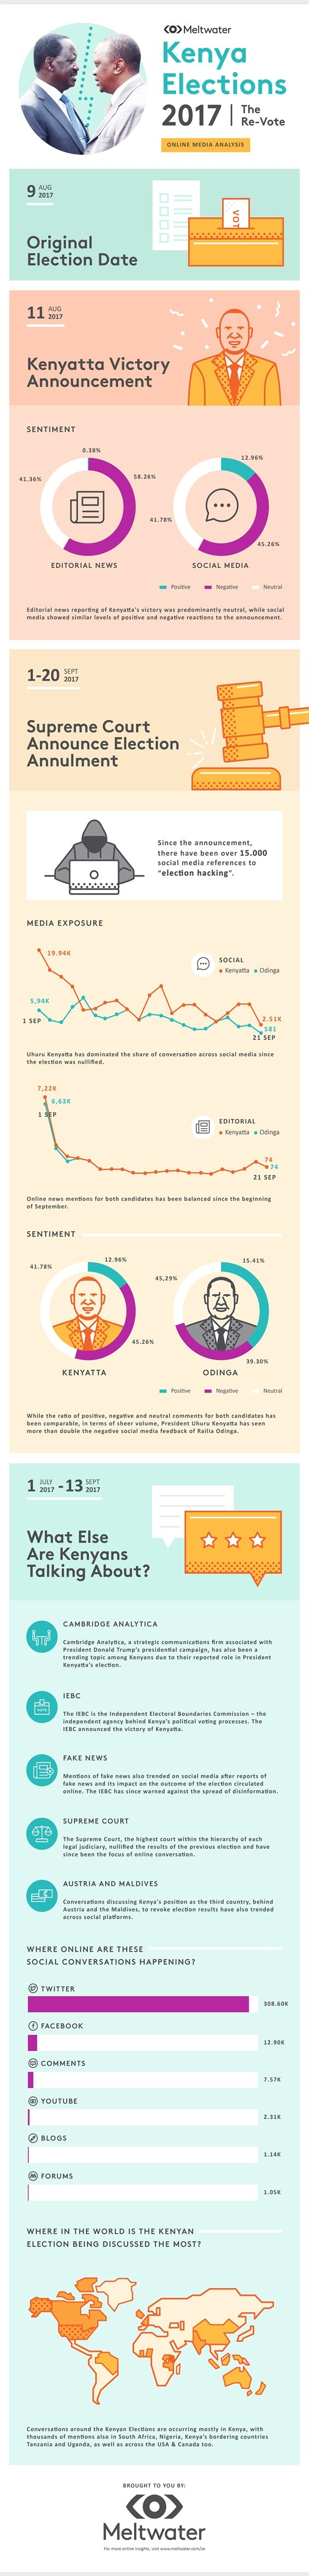 Kenya election annulment: What are Kenyans talking about?